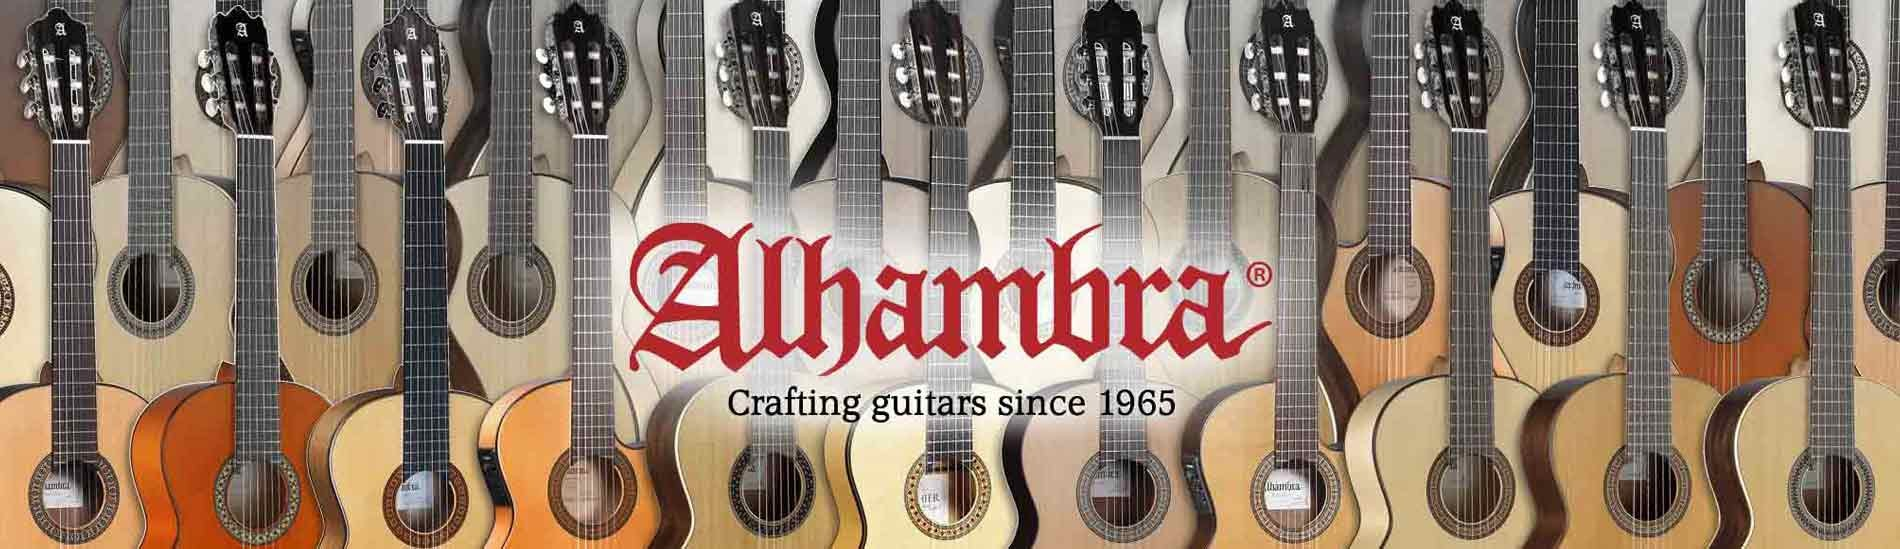 Alhambra guitars since 1965